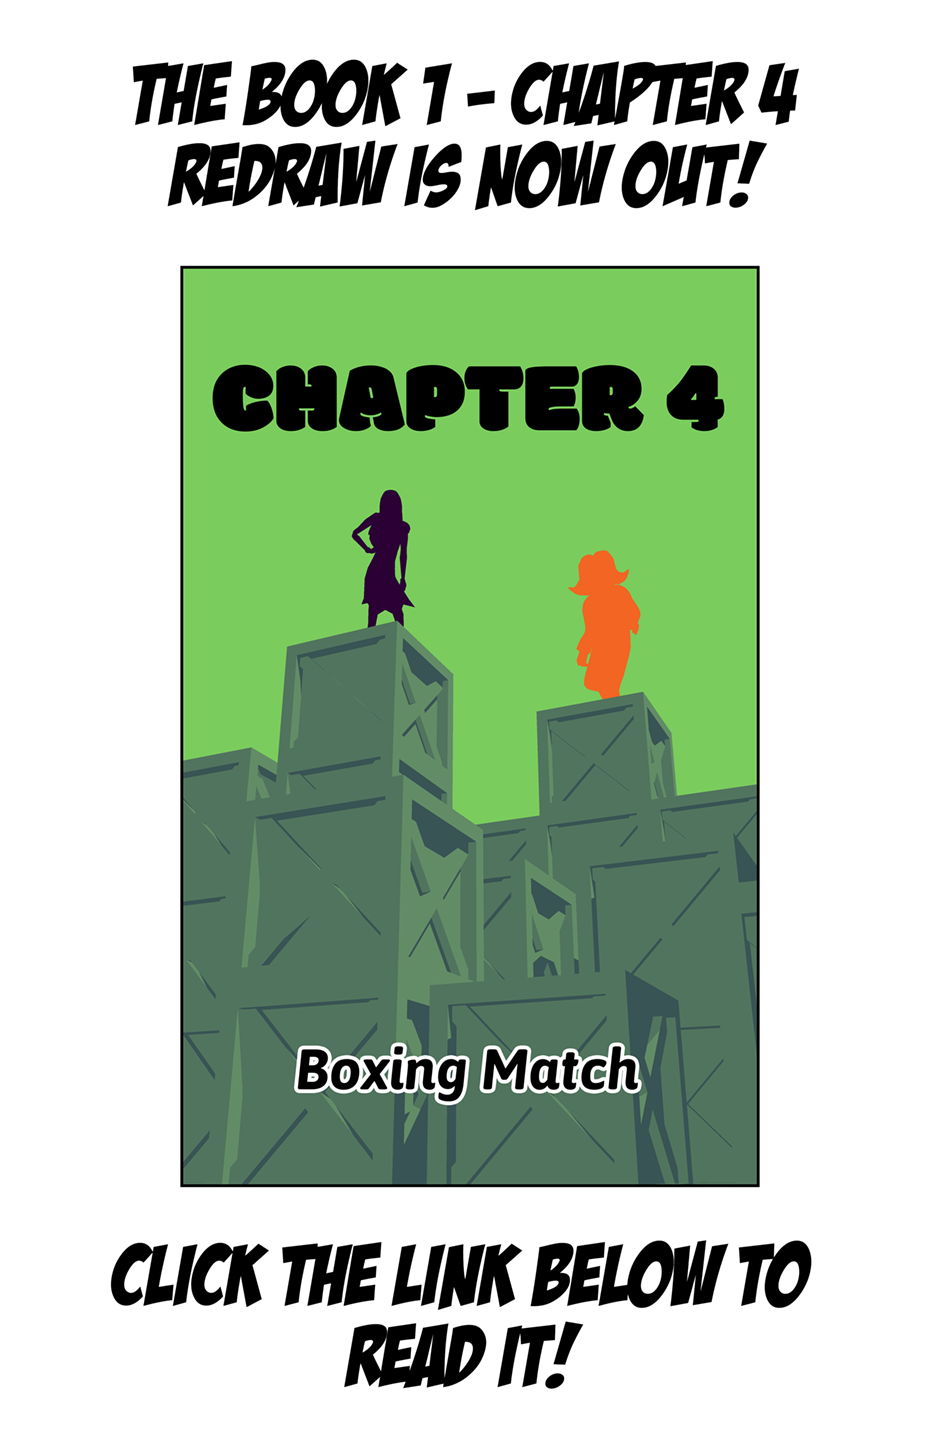 Book 1 Chapter 4 - Redraw!